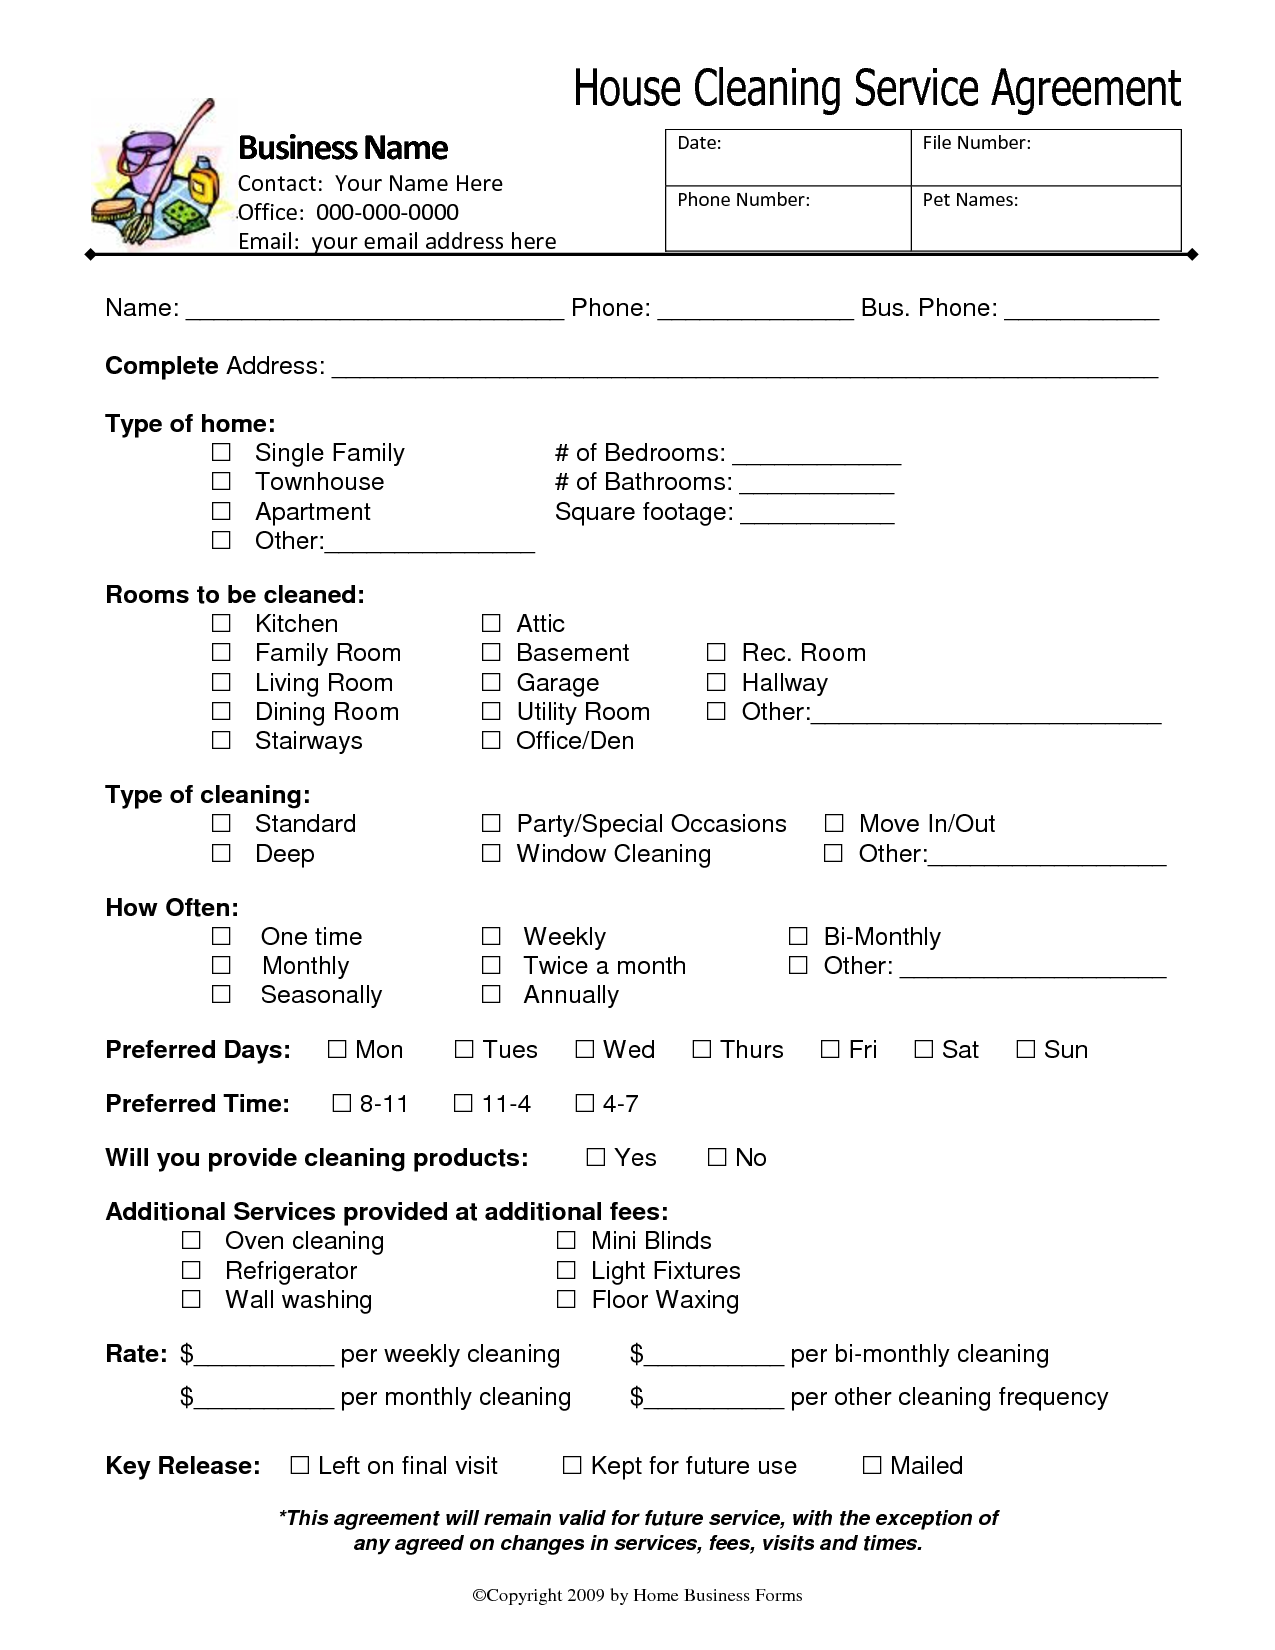 best images about printable business forms lawn 17 best images about printable business forms lawn care this data and employee benefit